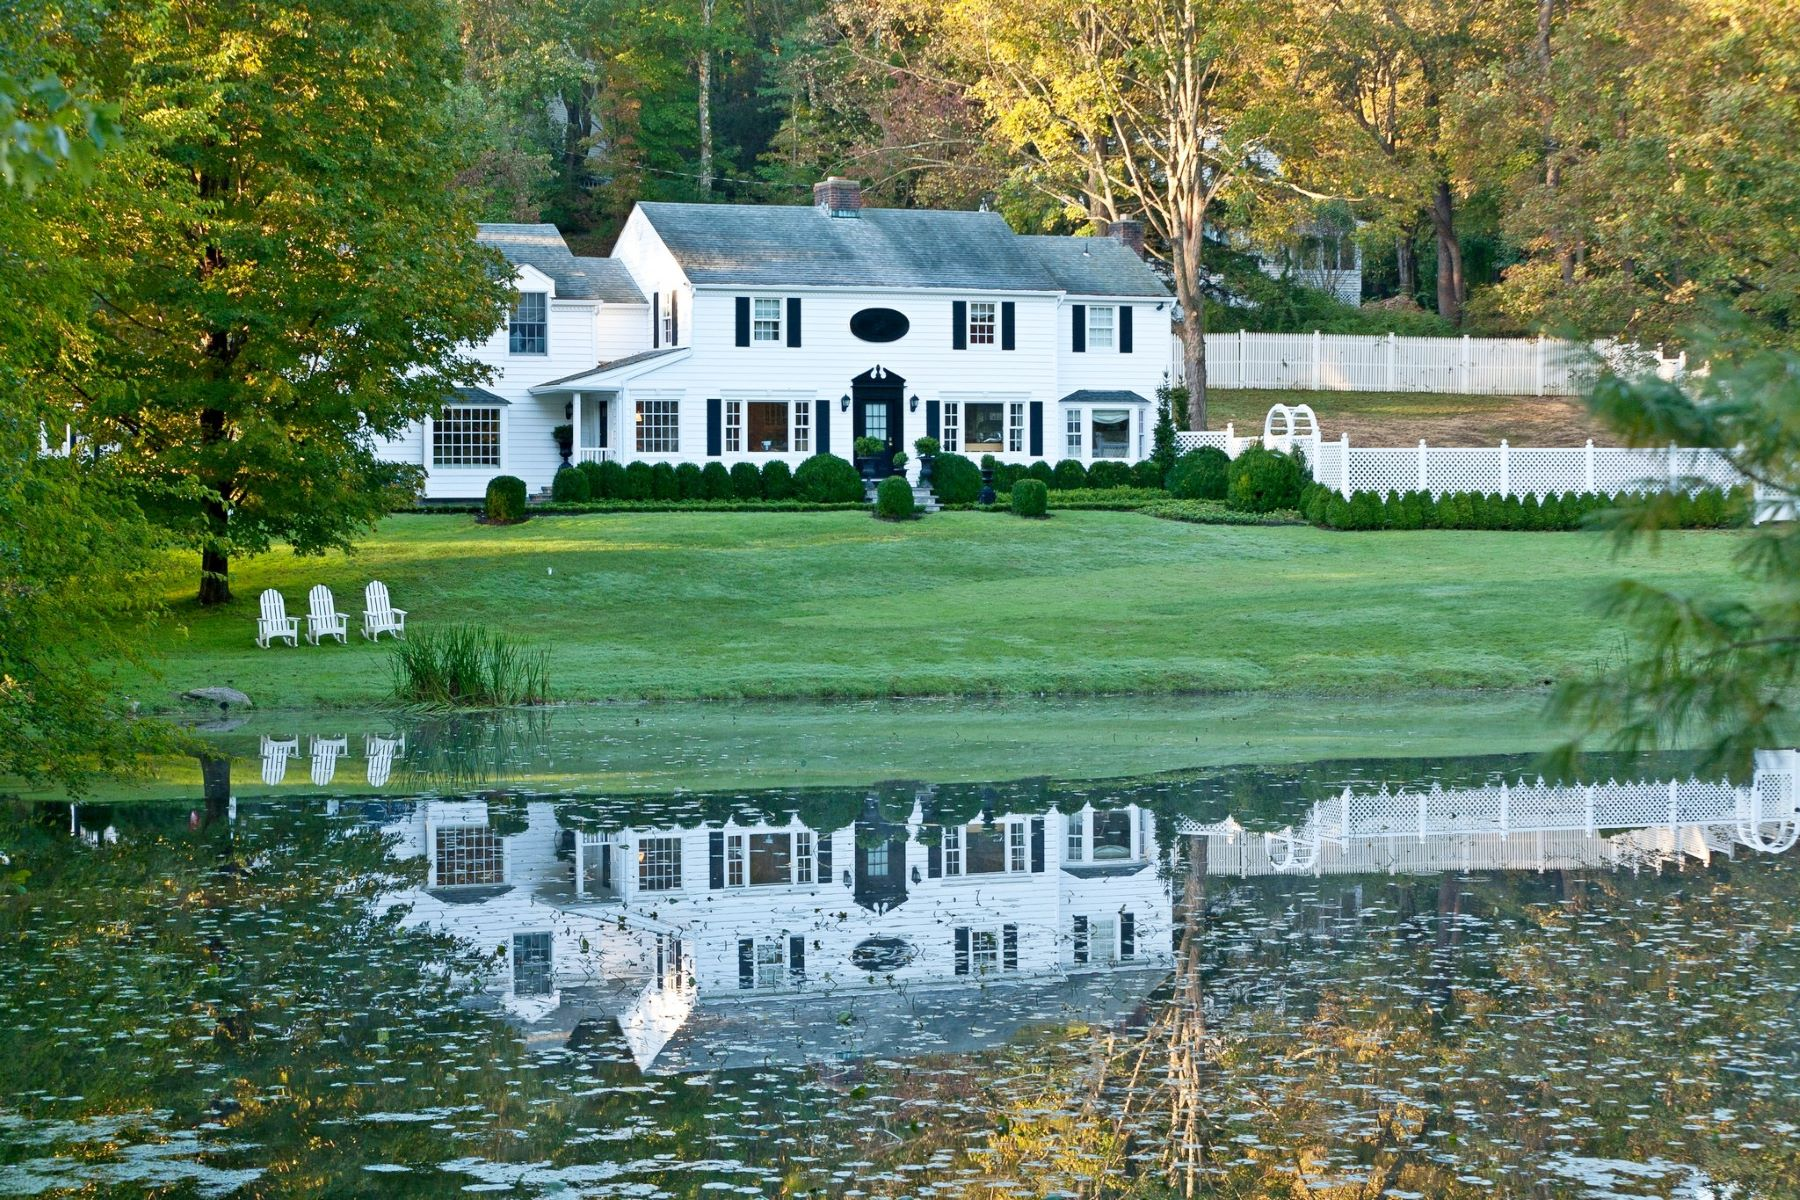 Single Family Homes for Sale at Exceptional Retreat Like Setting 4 Bittersweet Lane Mount Kisco, New York 10549 United States